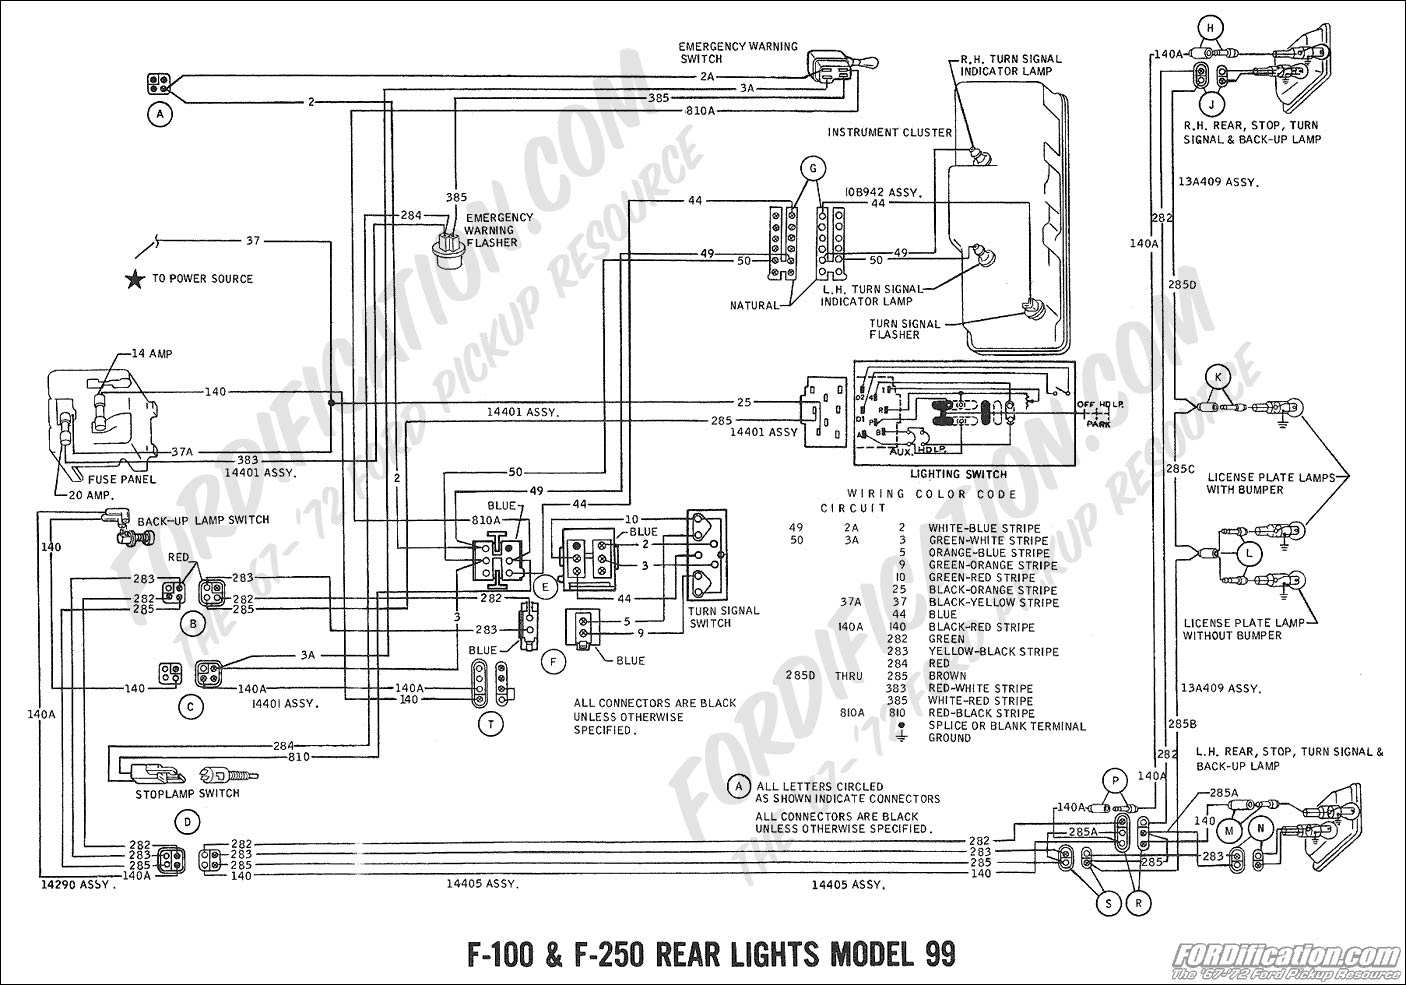 2002 Ford F150 Brake Fuse Quick Start Guide Of Wiring Diagram F350 Light 2000 Rear Lights Free Engine Image For User Manual Download